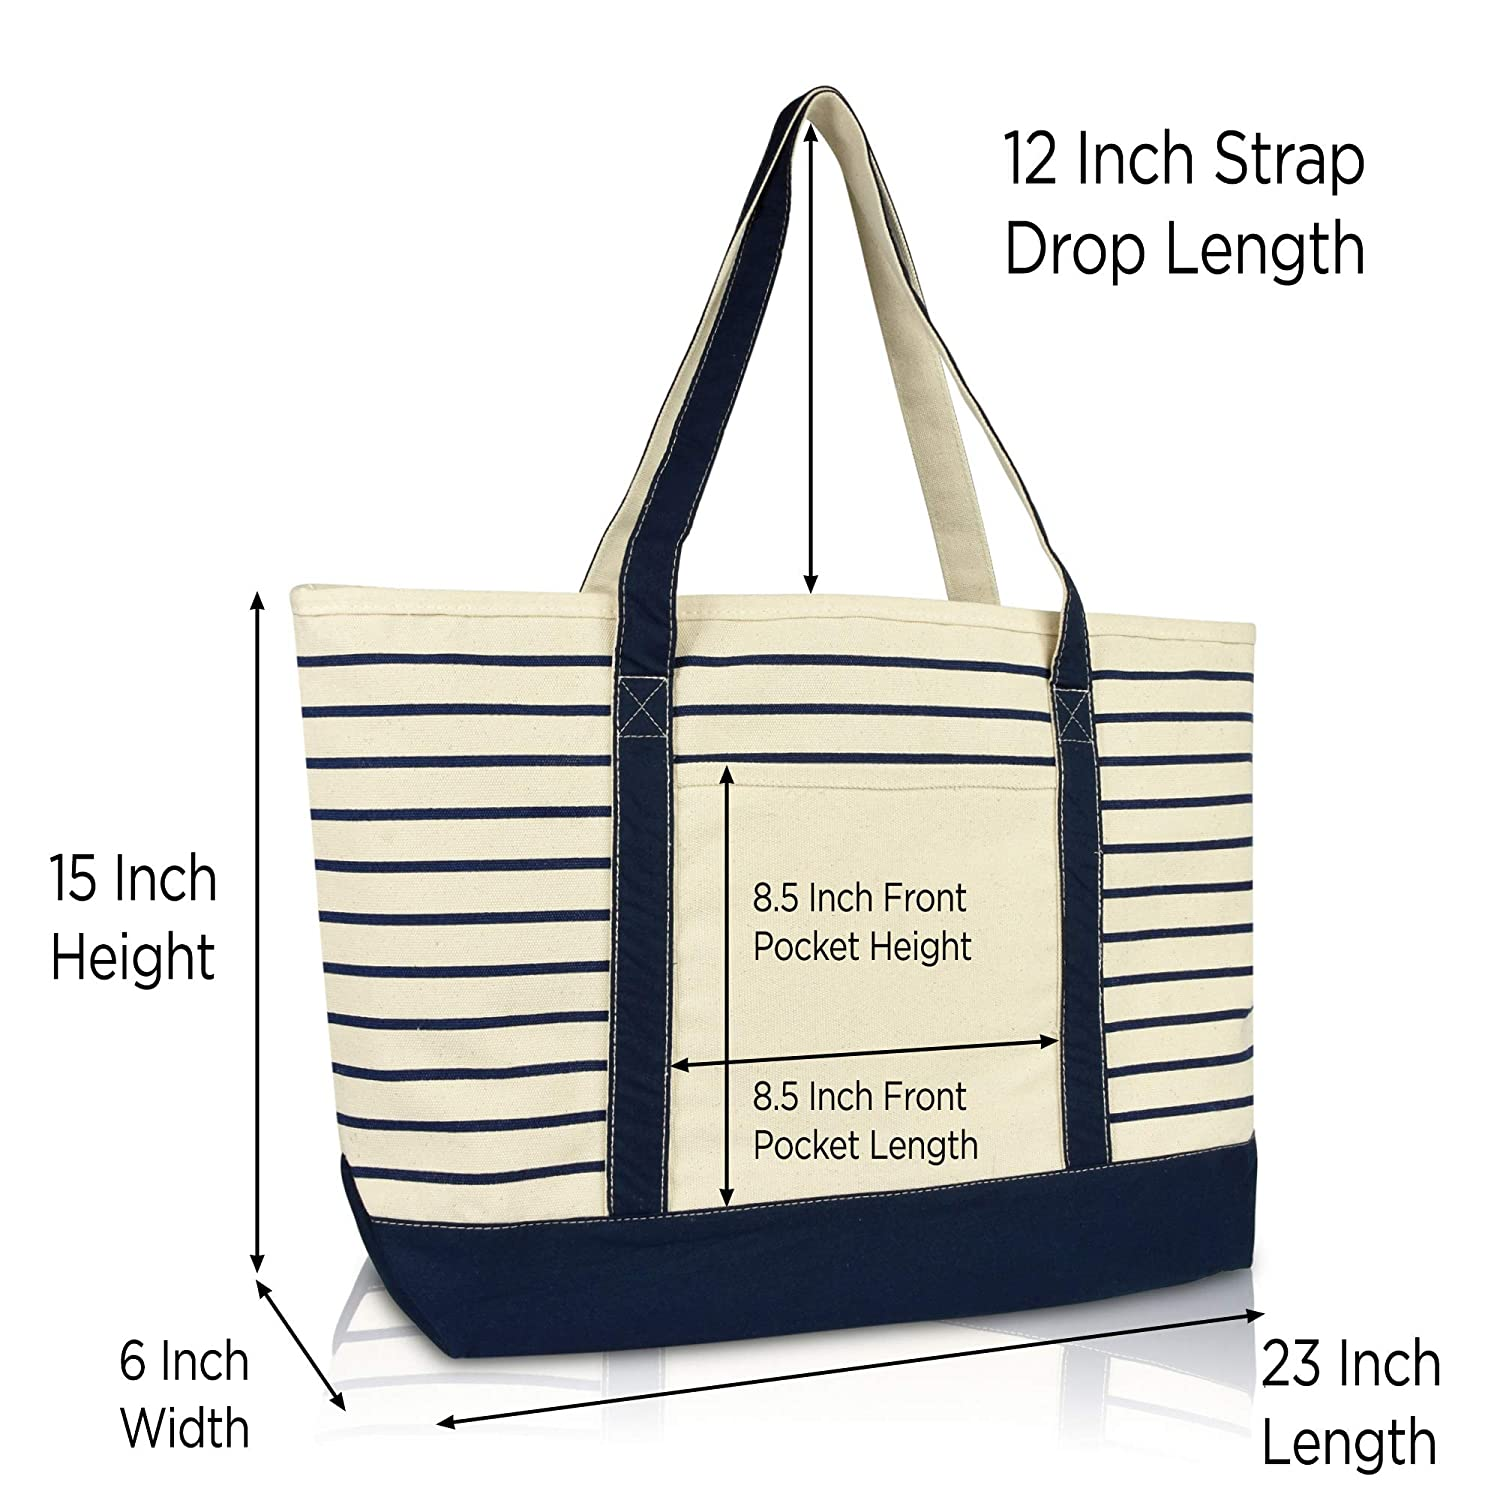 be33df490ab Amazon.com: DALIX Large Stripe Tote Deluxe Shoulder Bag Cotton Canvas in  Navy Blue: DALIX USA